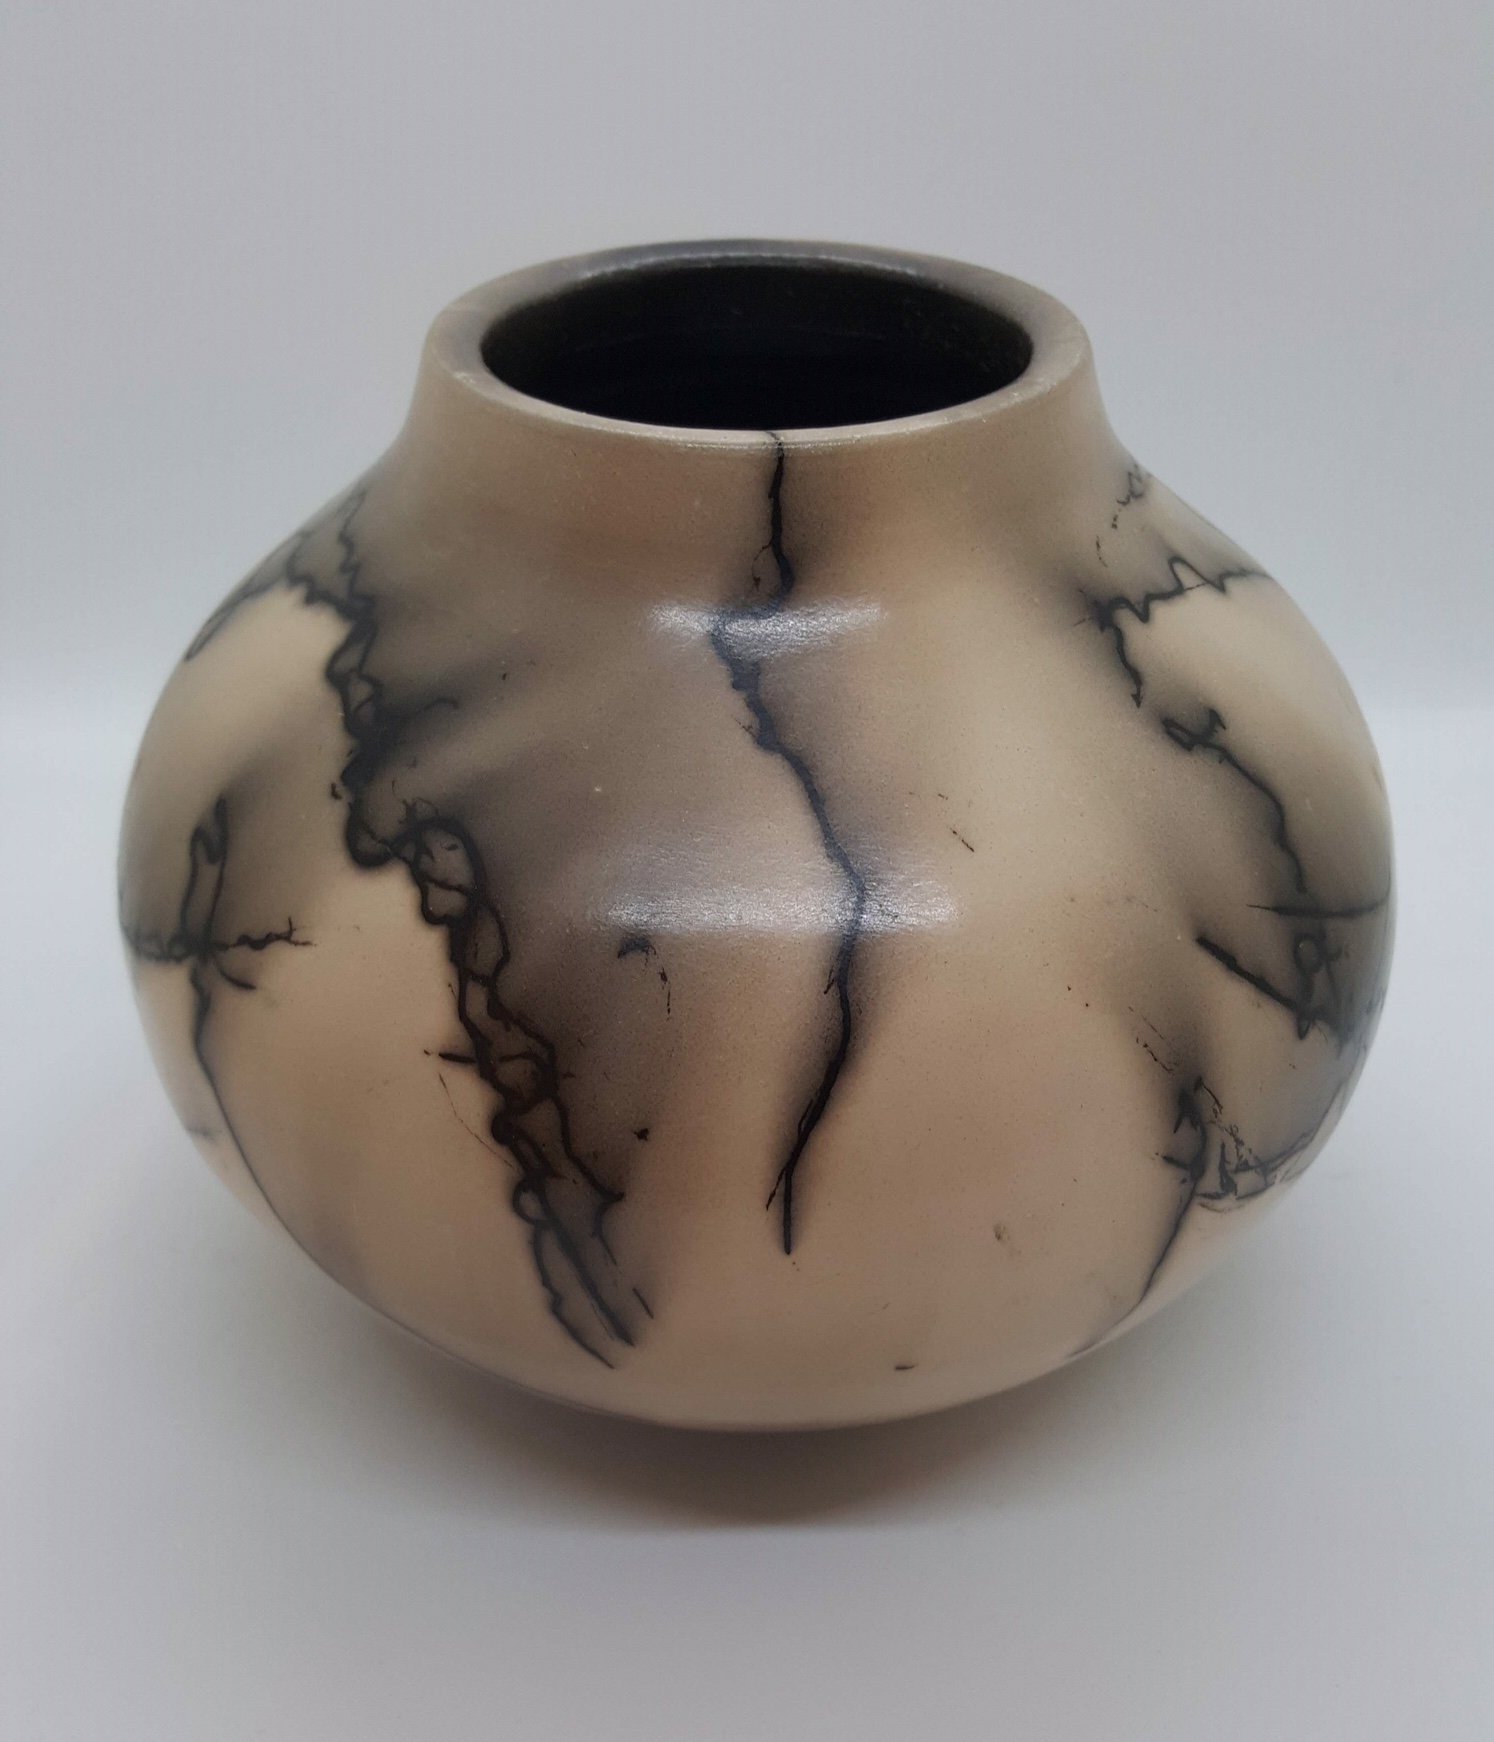 Horsehair-Fired Vessel